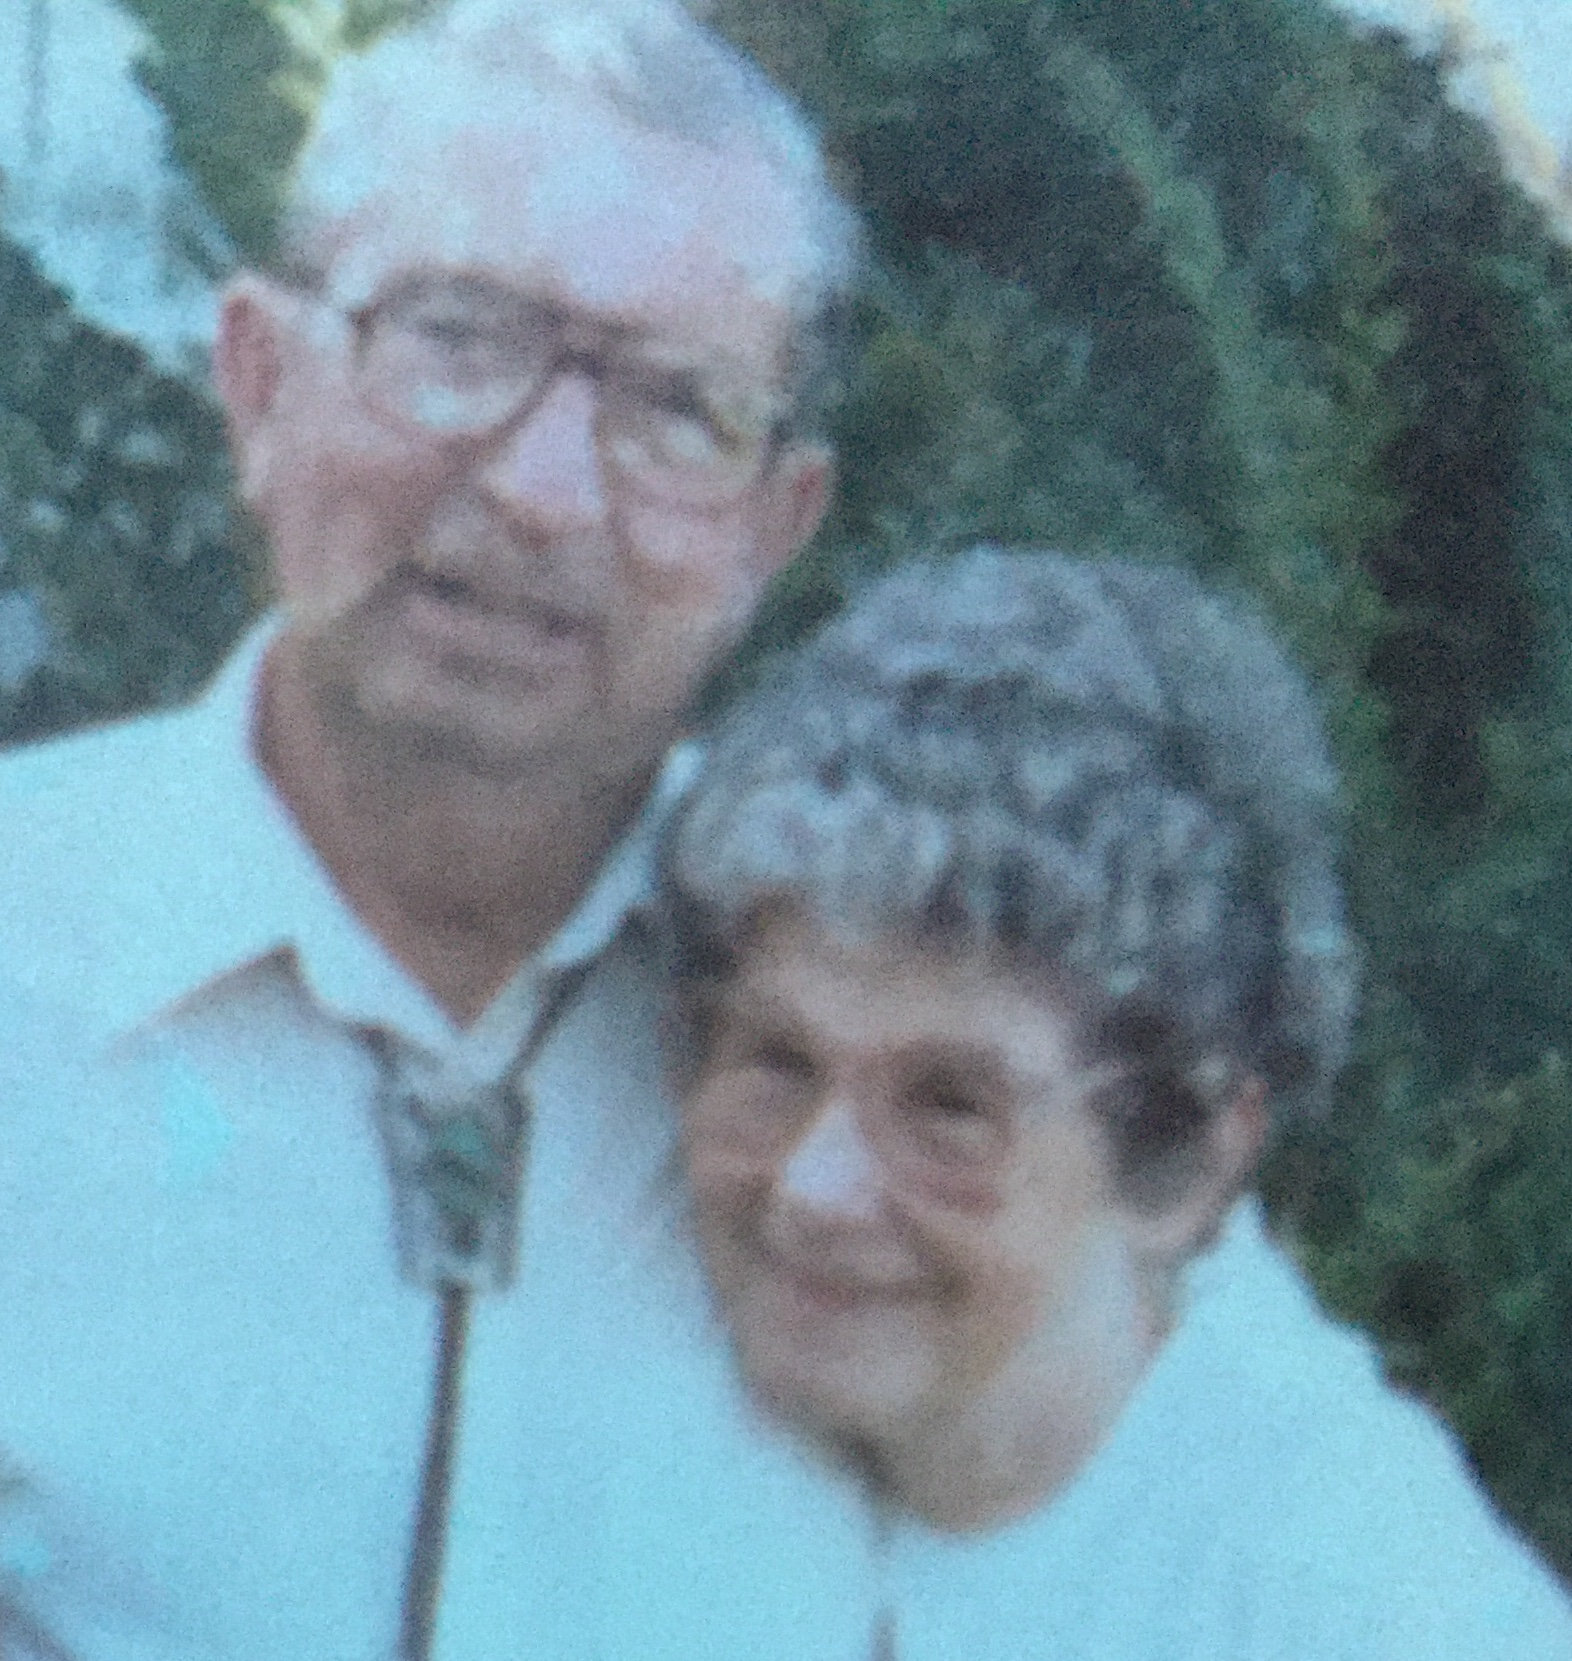 Nana and granddad are also with you now. Hold on tight. They will show you the way.